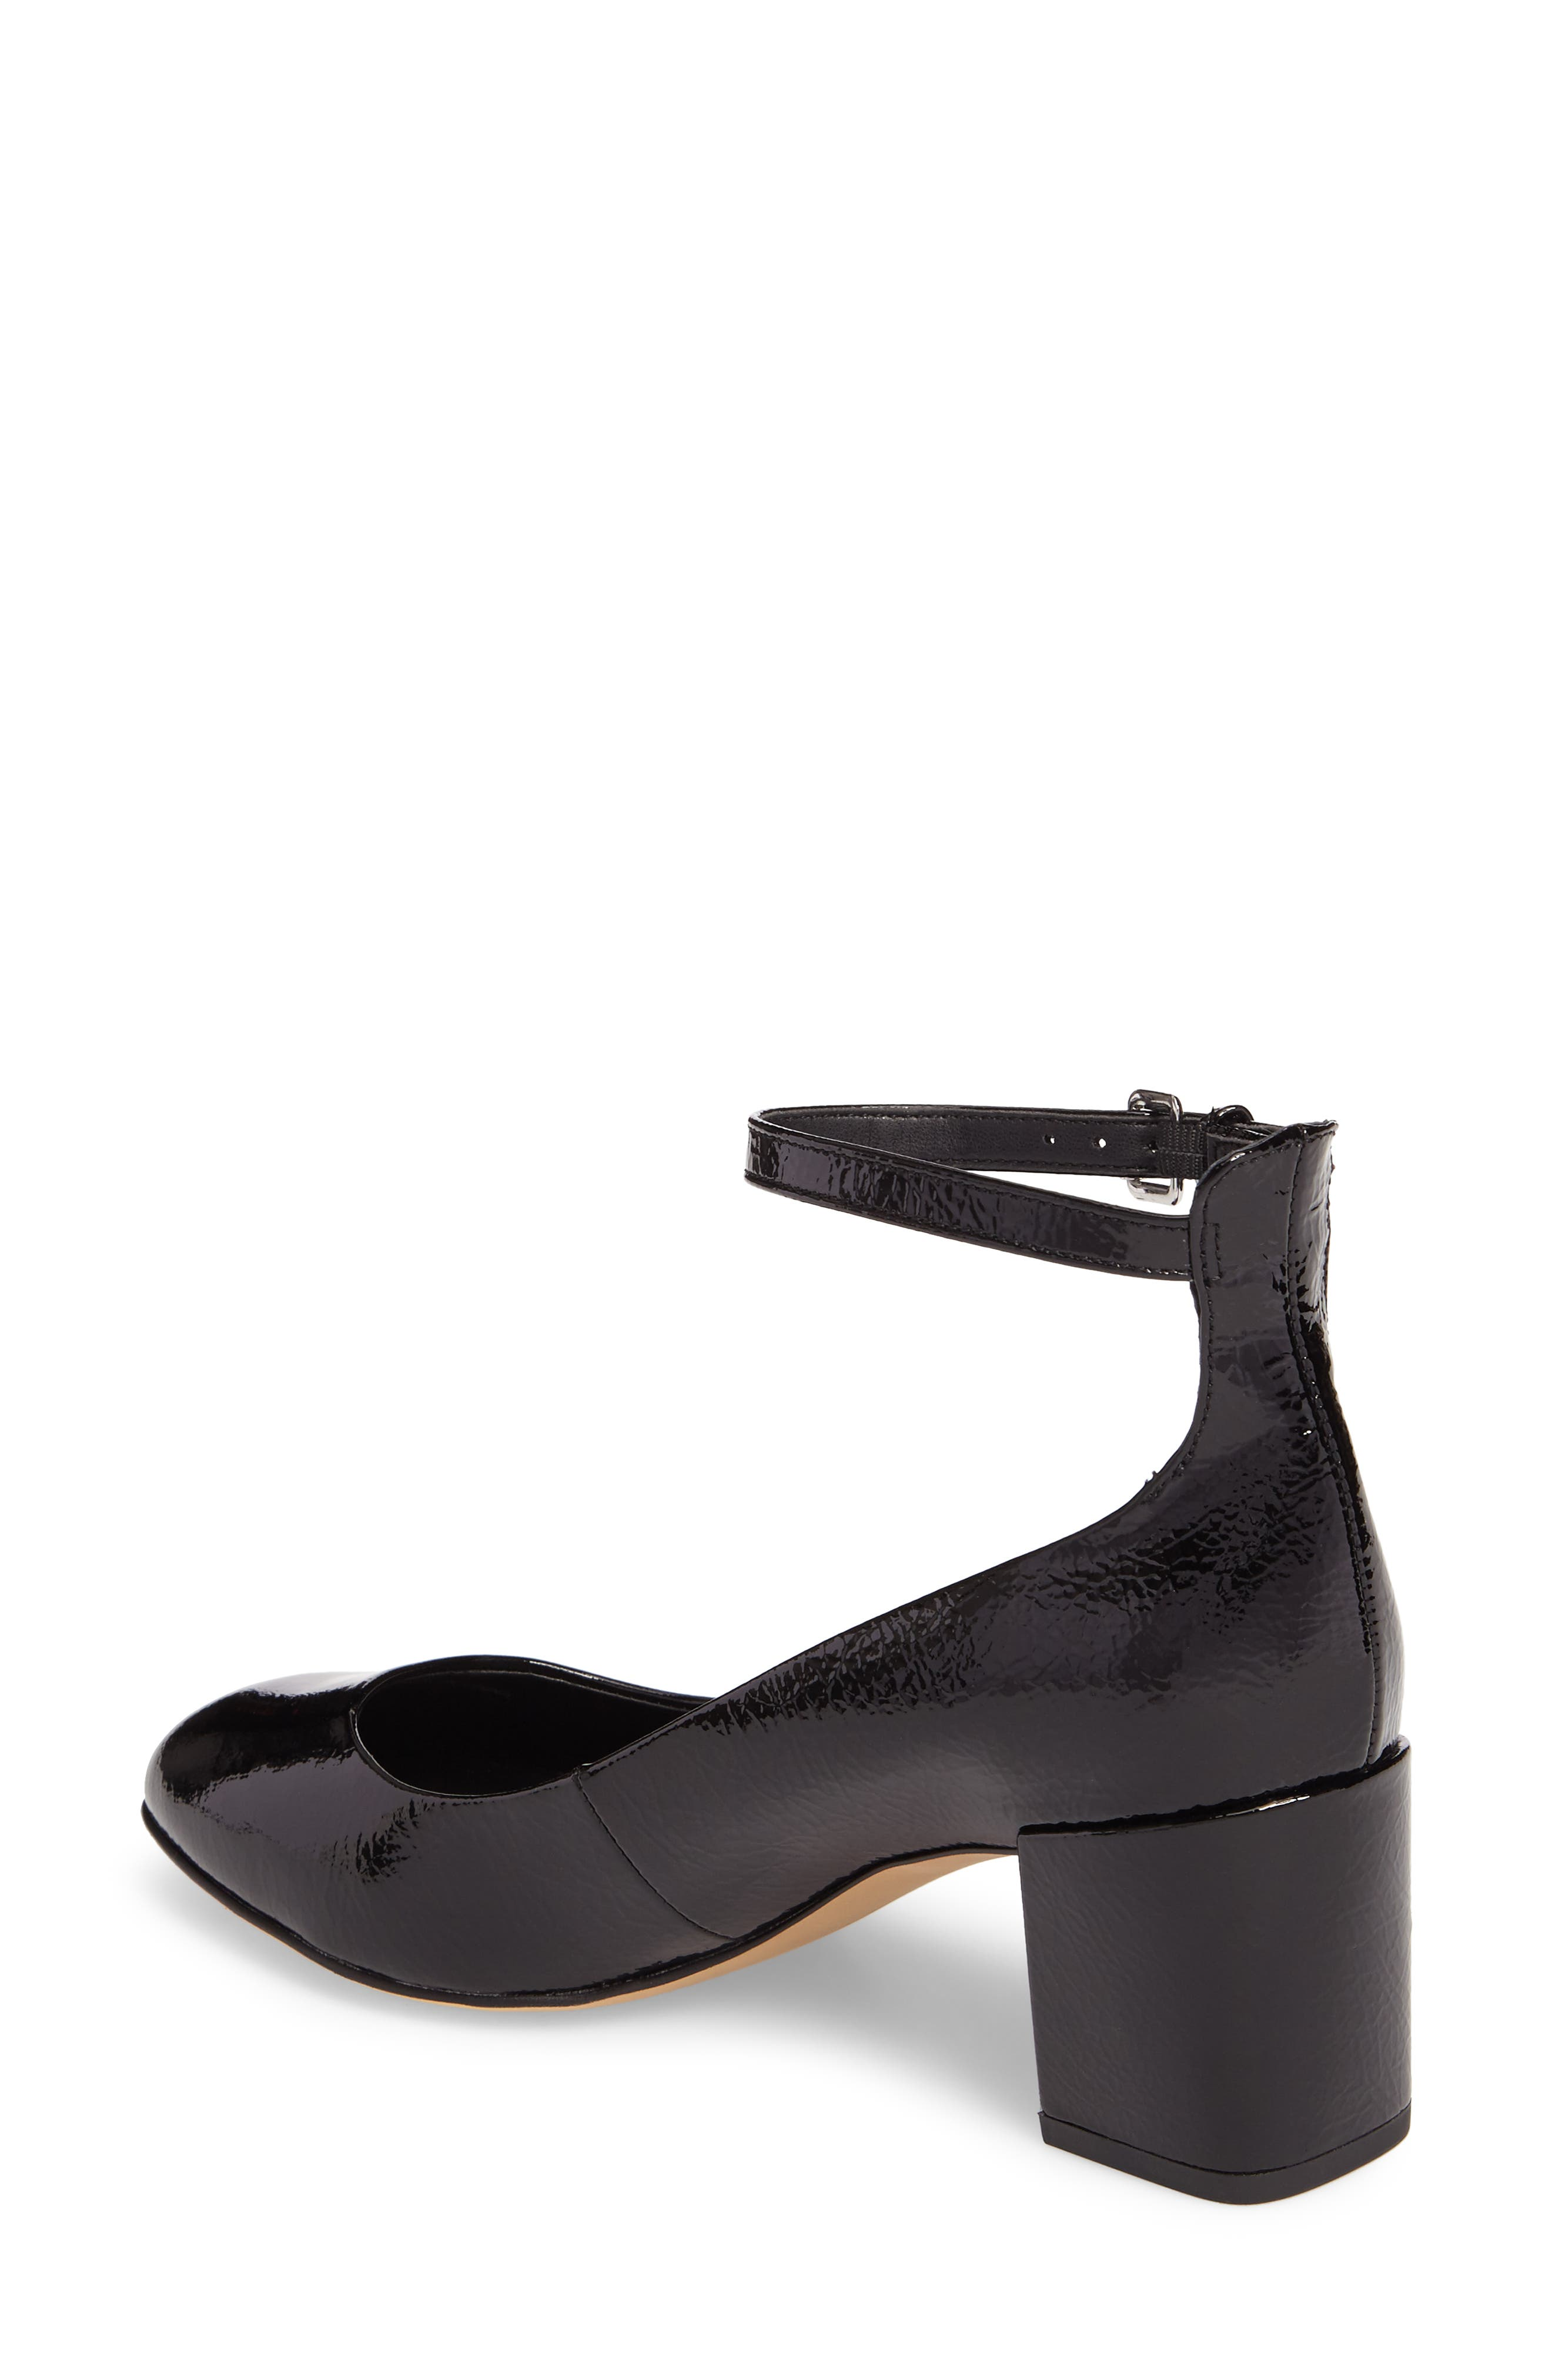 Bridget Ankle Strap Pump,                             Alternate thumbnail 2, color,                             001